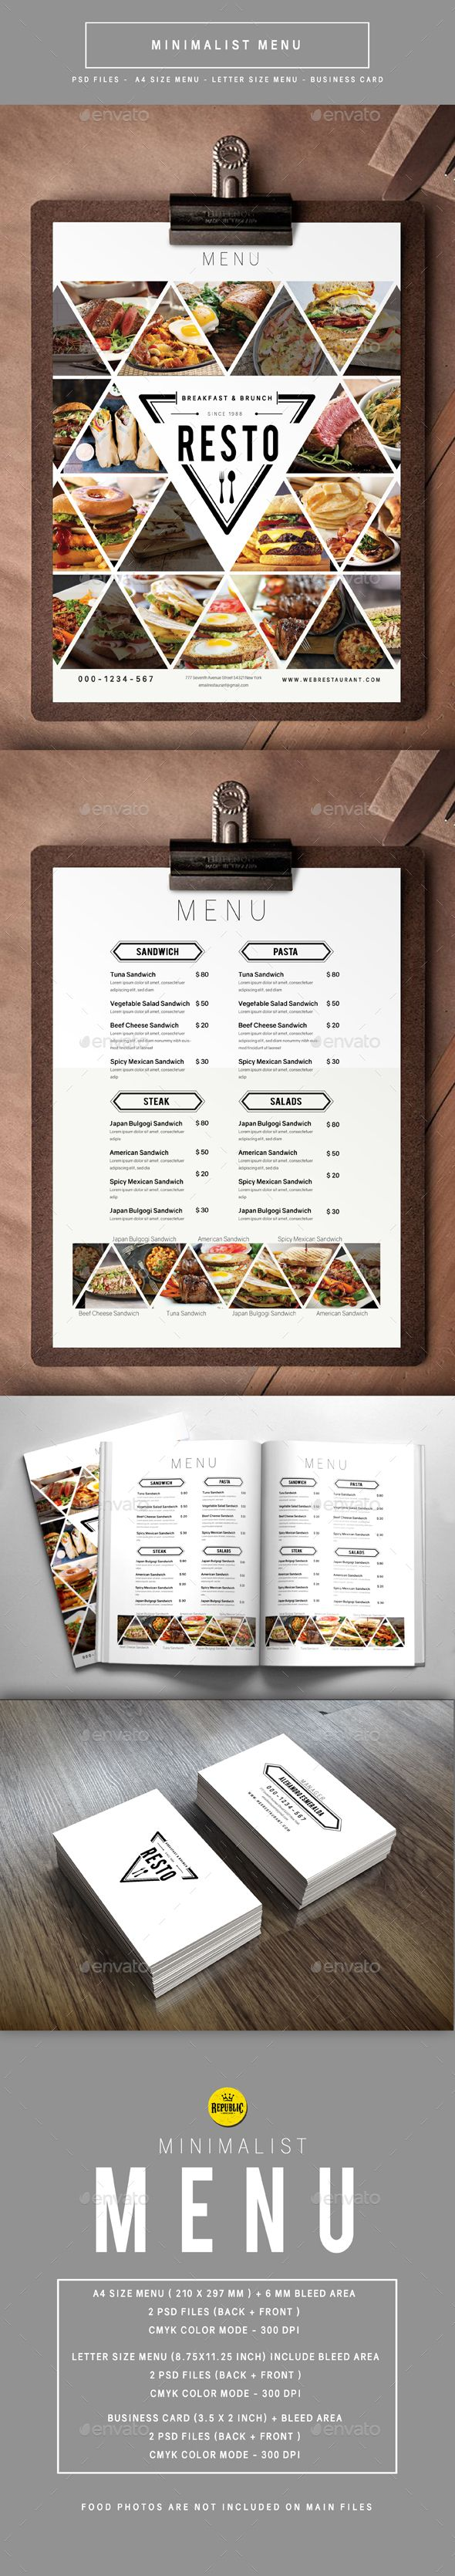 Minimalist Menu Template PSD. Download here: http://graphicriver.net/item/minimalist-menu/16461198?ref=ksioks